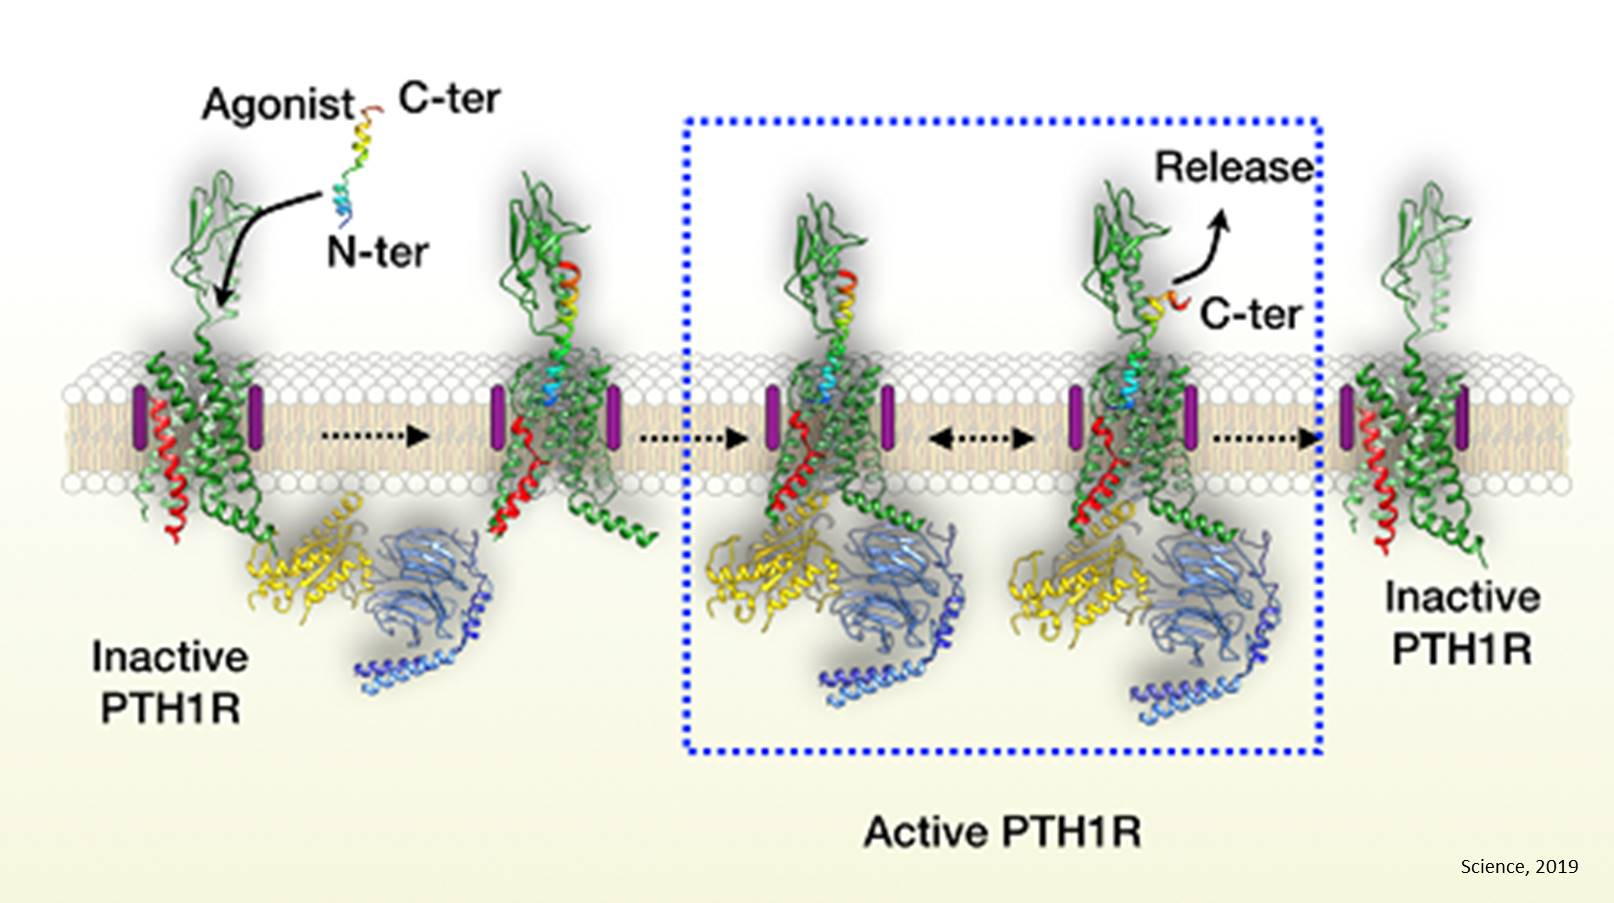 Atomic structure of the active human parathyroid hormone receptor-1